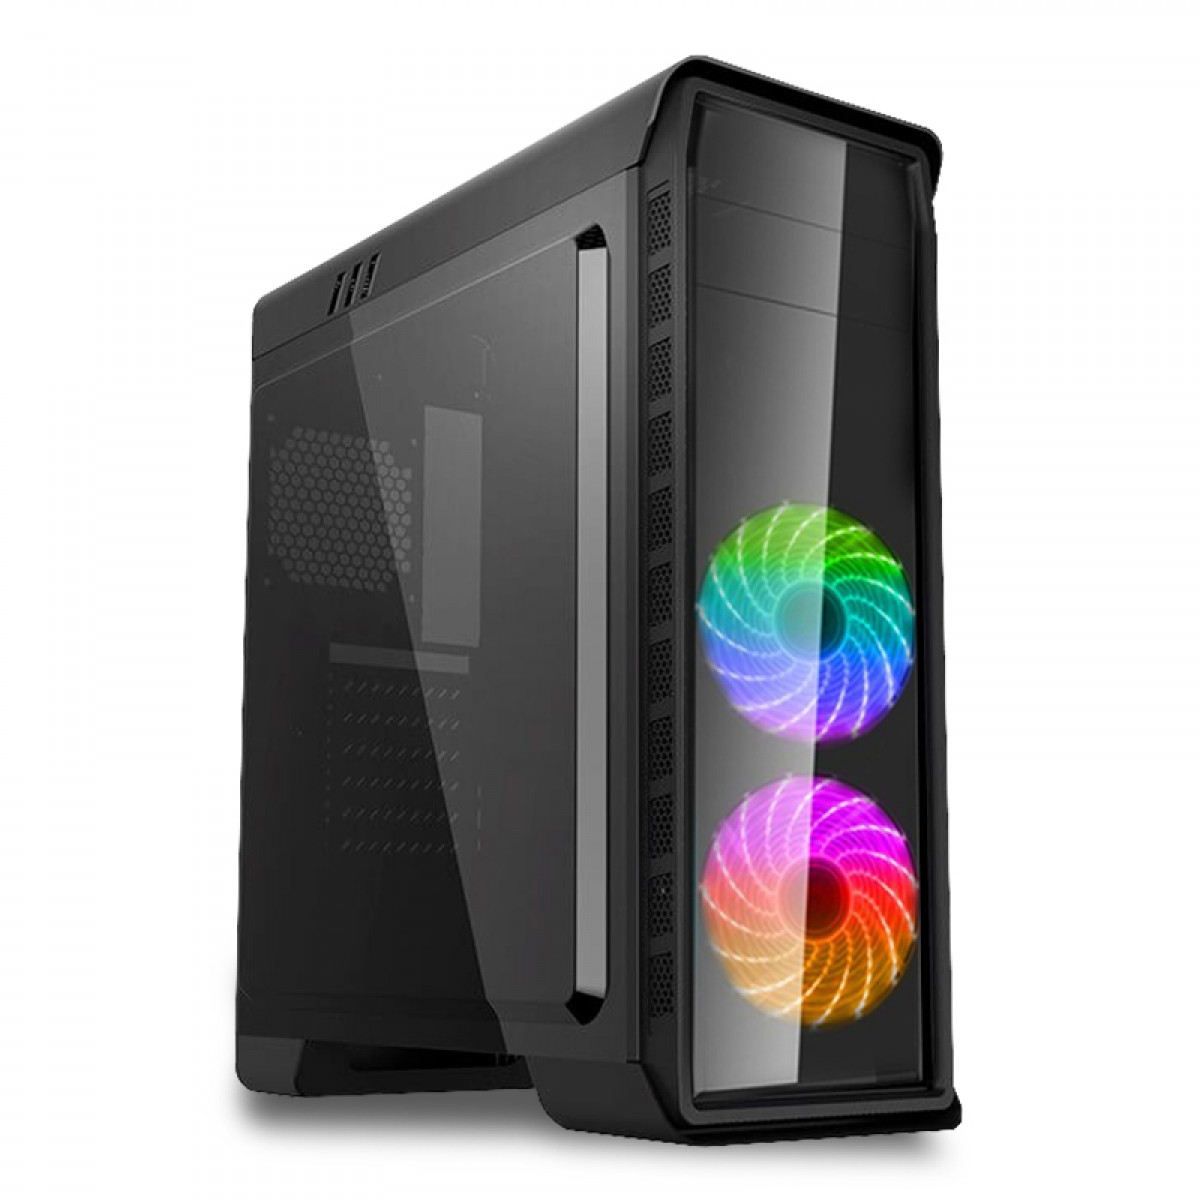 Pc Gamer T-Power Edition Intel I7 8700k / Rtx 2070 8gb / DDR4 8Gb / Hd 1Tb / 600W